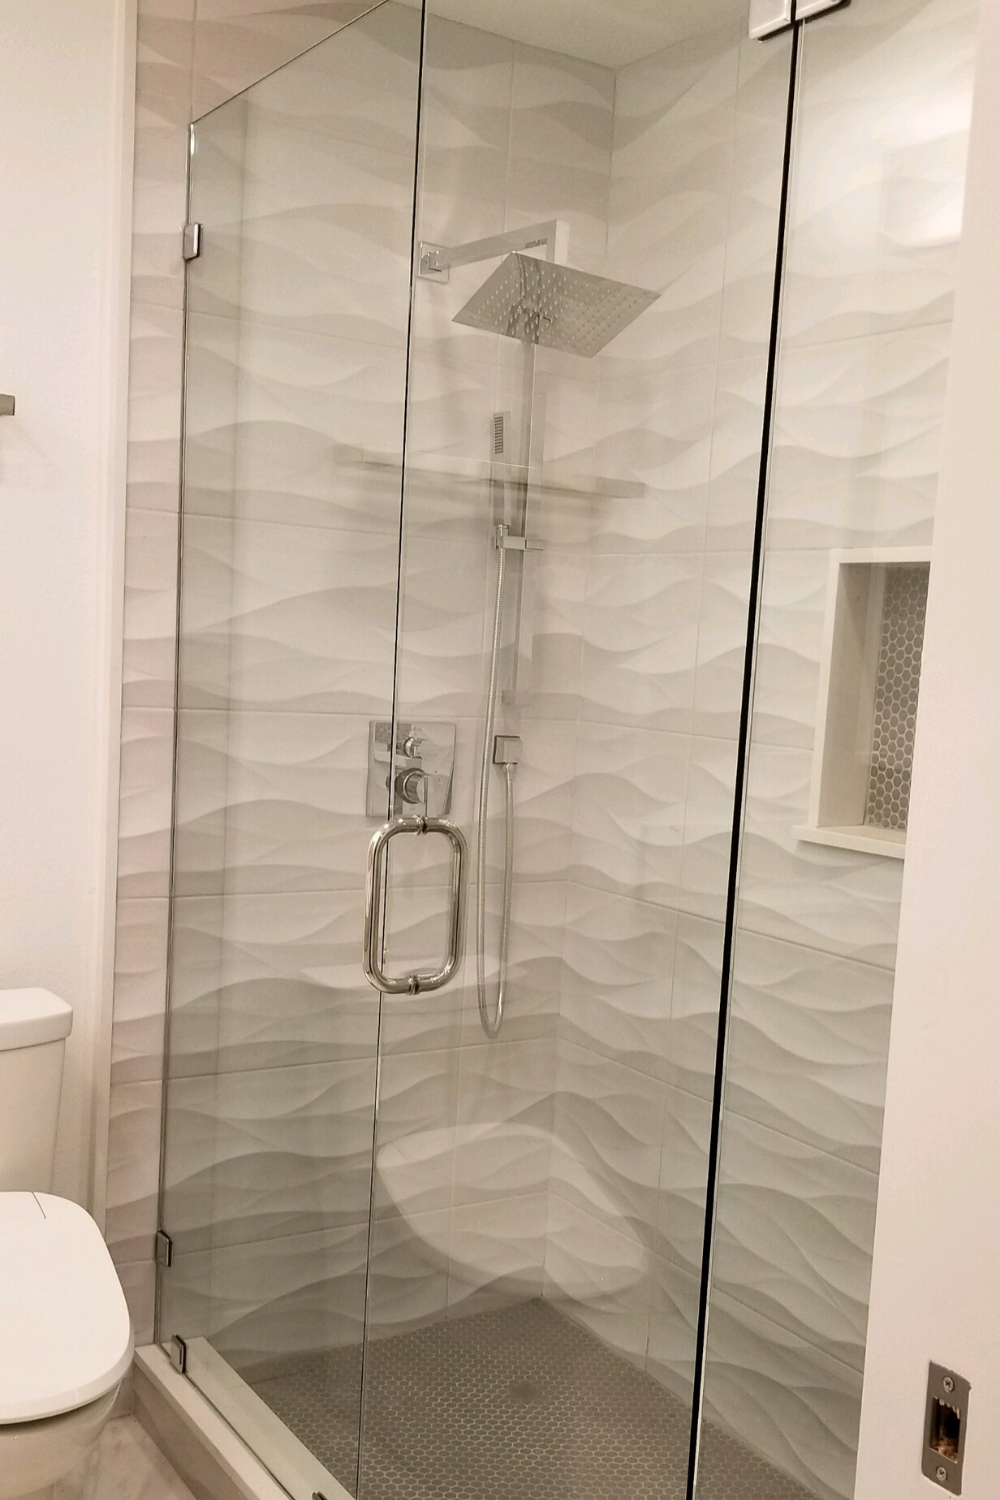 Choose The Right Shower Door For Your Bathroom From Our Exclusive Range Of Glass Shower Doors And Enclosu In 2020 Bathroom Shower Doors Shower Doors Glass Shower Doors